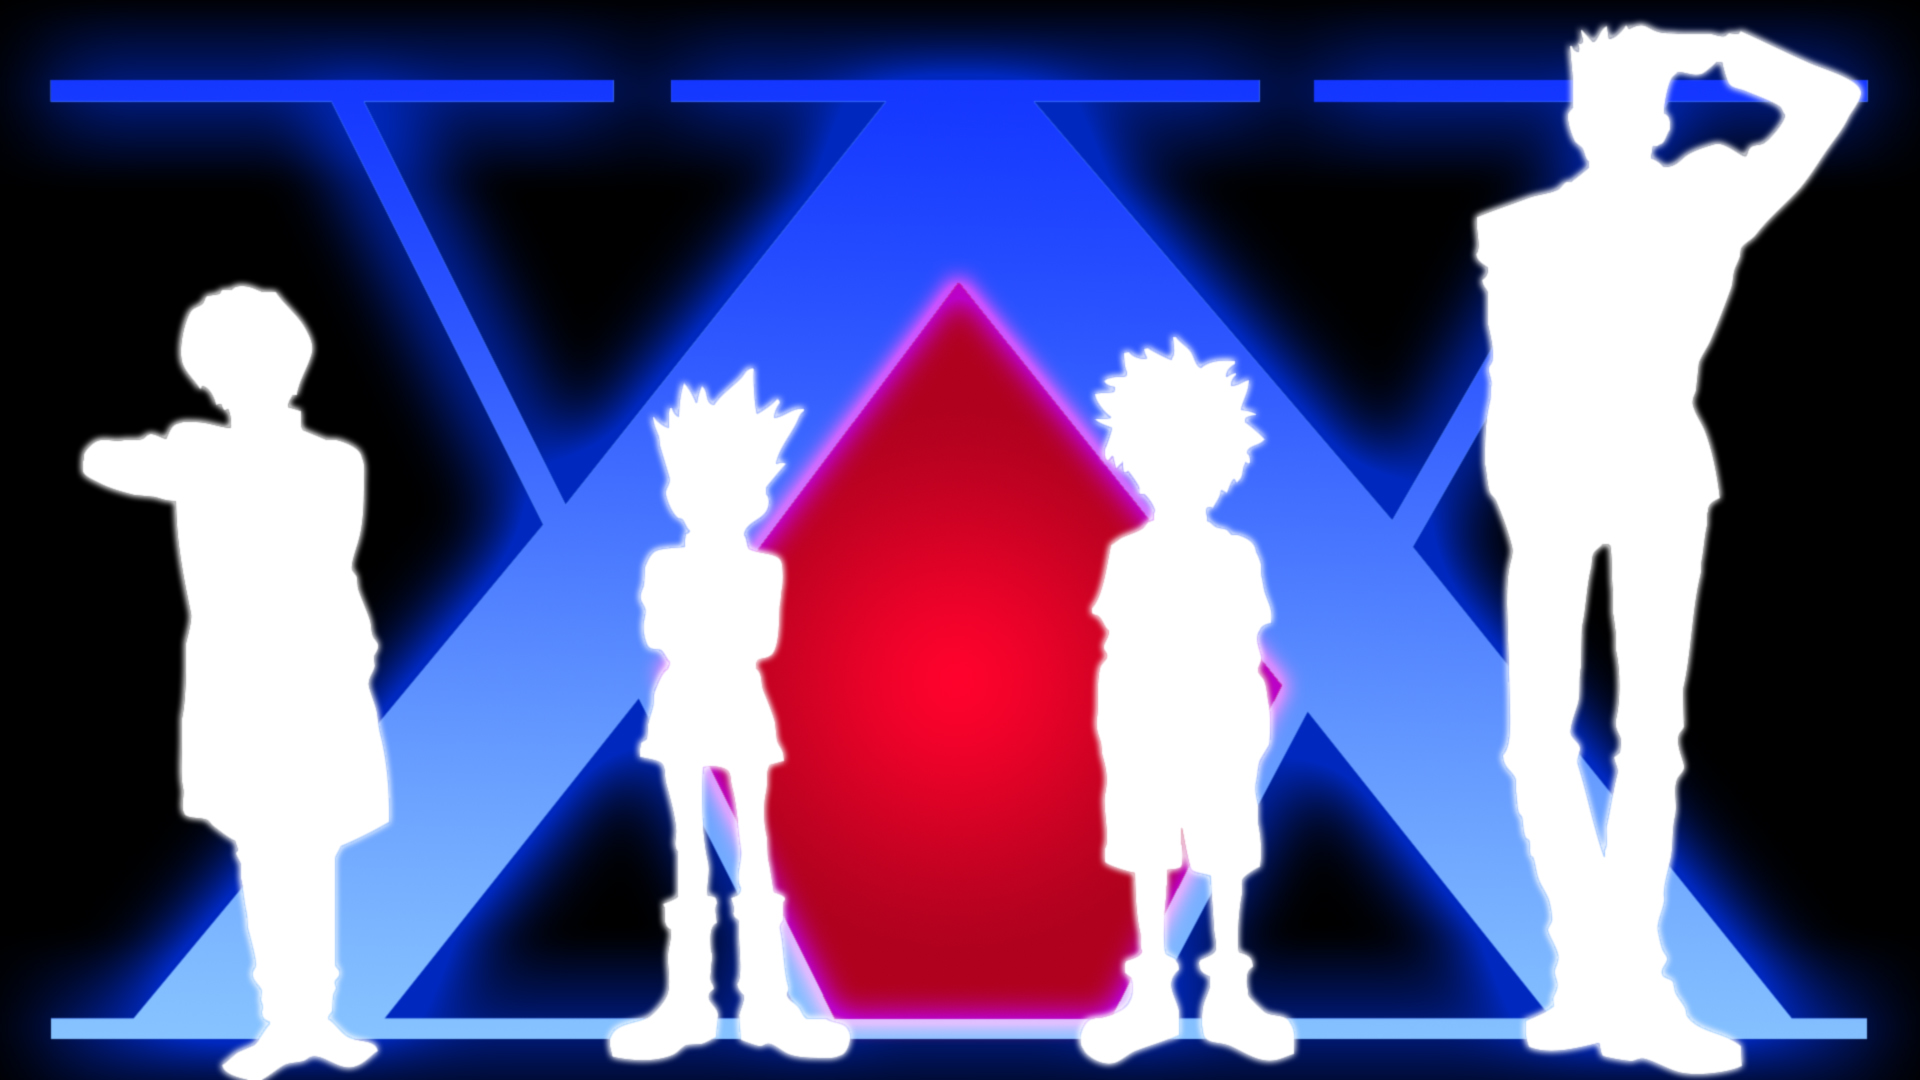 Find hd wallpapers for your desktop, mac, windows, apple, iphone or android device. Hunter x Hunter Ending Background HD Wallpaper ...